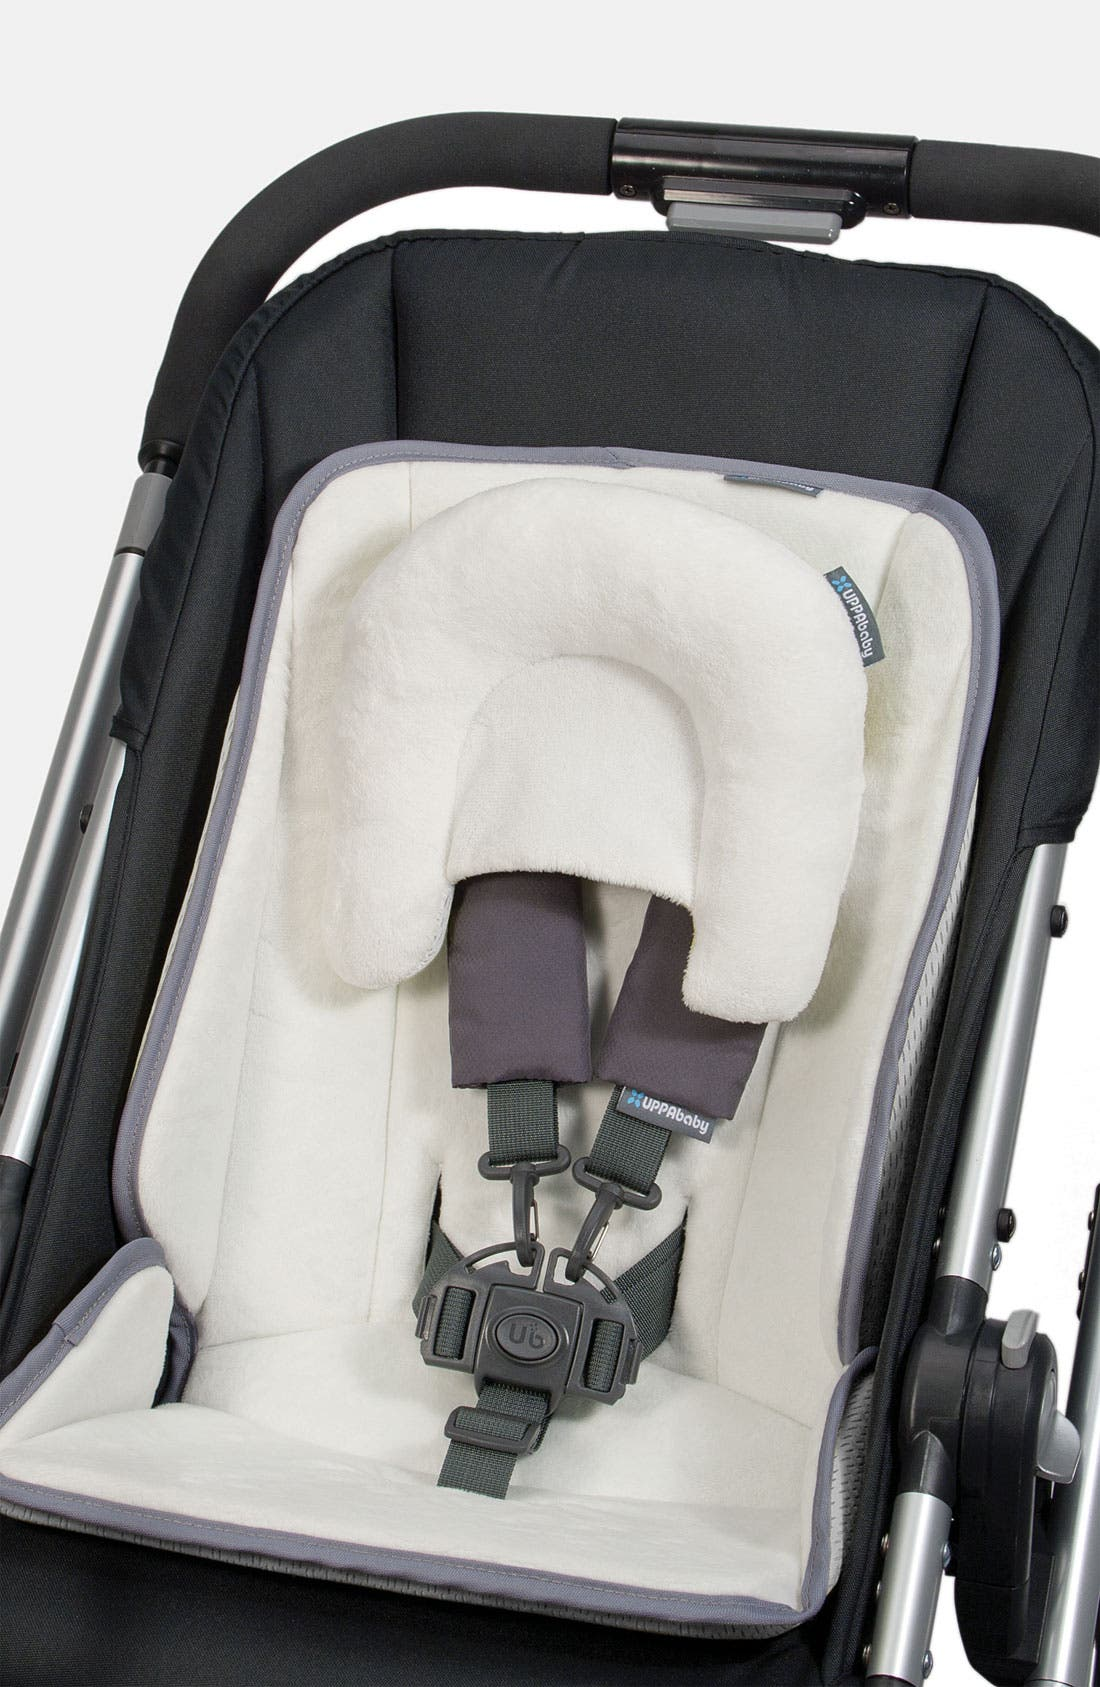 VISTA & CRUZ Infant SnugSeat Inset for Toddler Seat,                         Main,                         color, WHITE